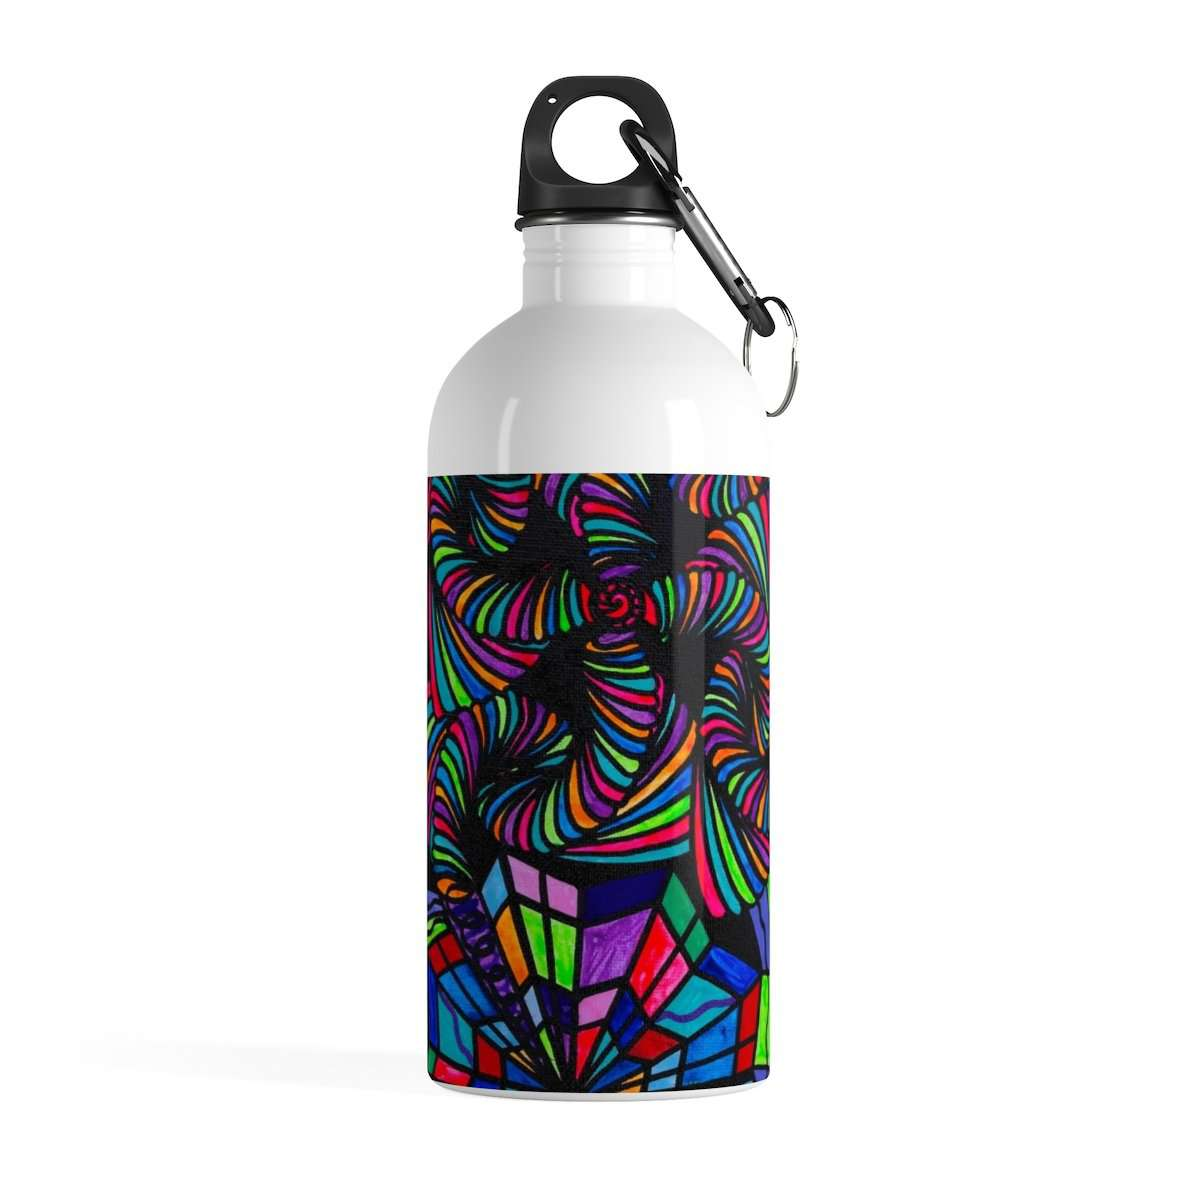 Burgeon - Stainless Steel Water Bottle